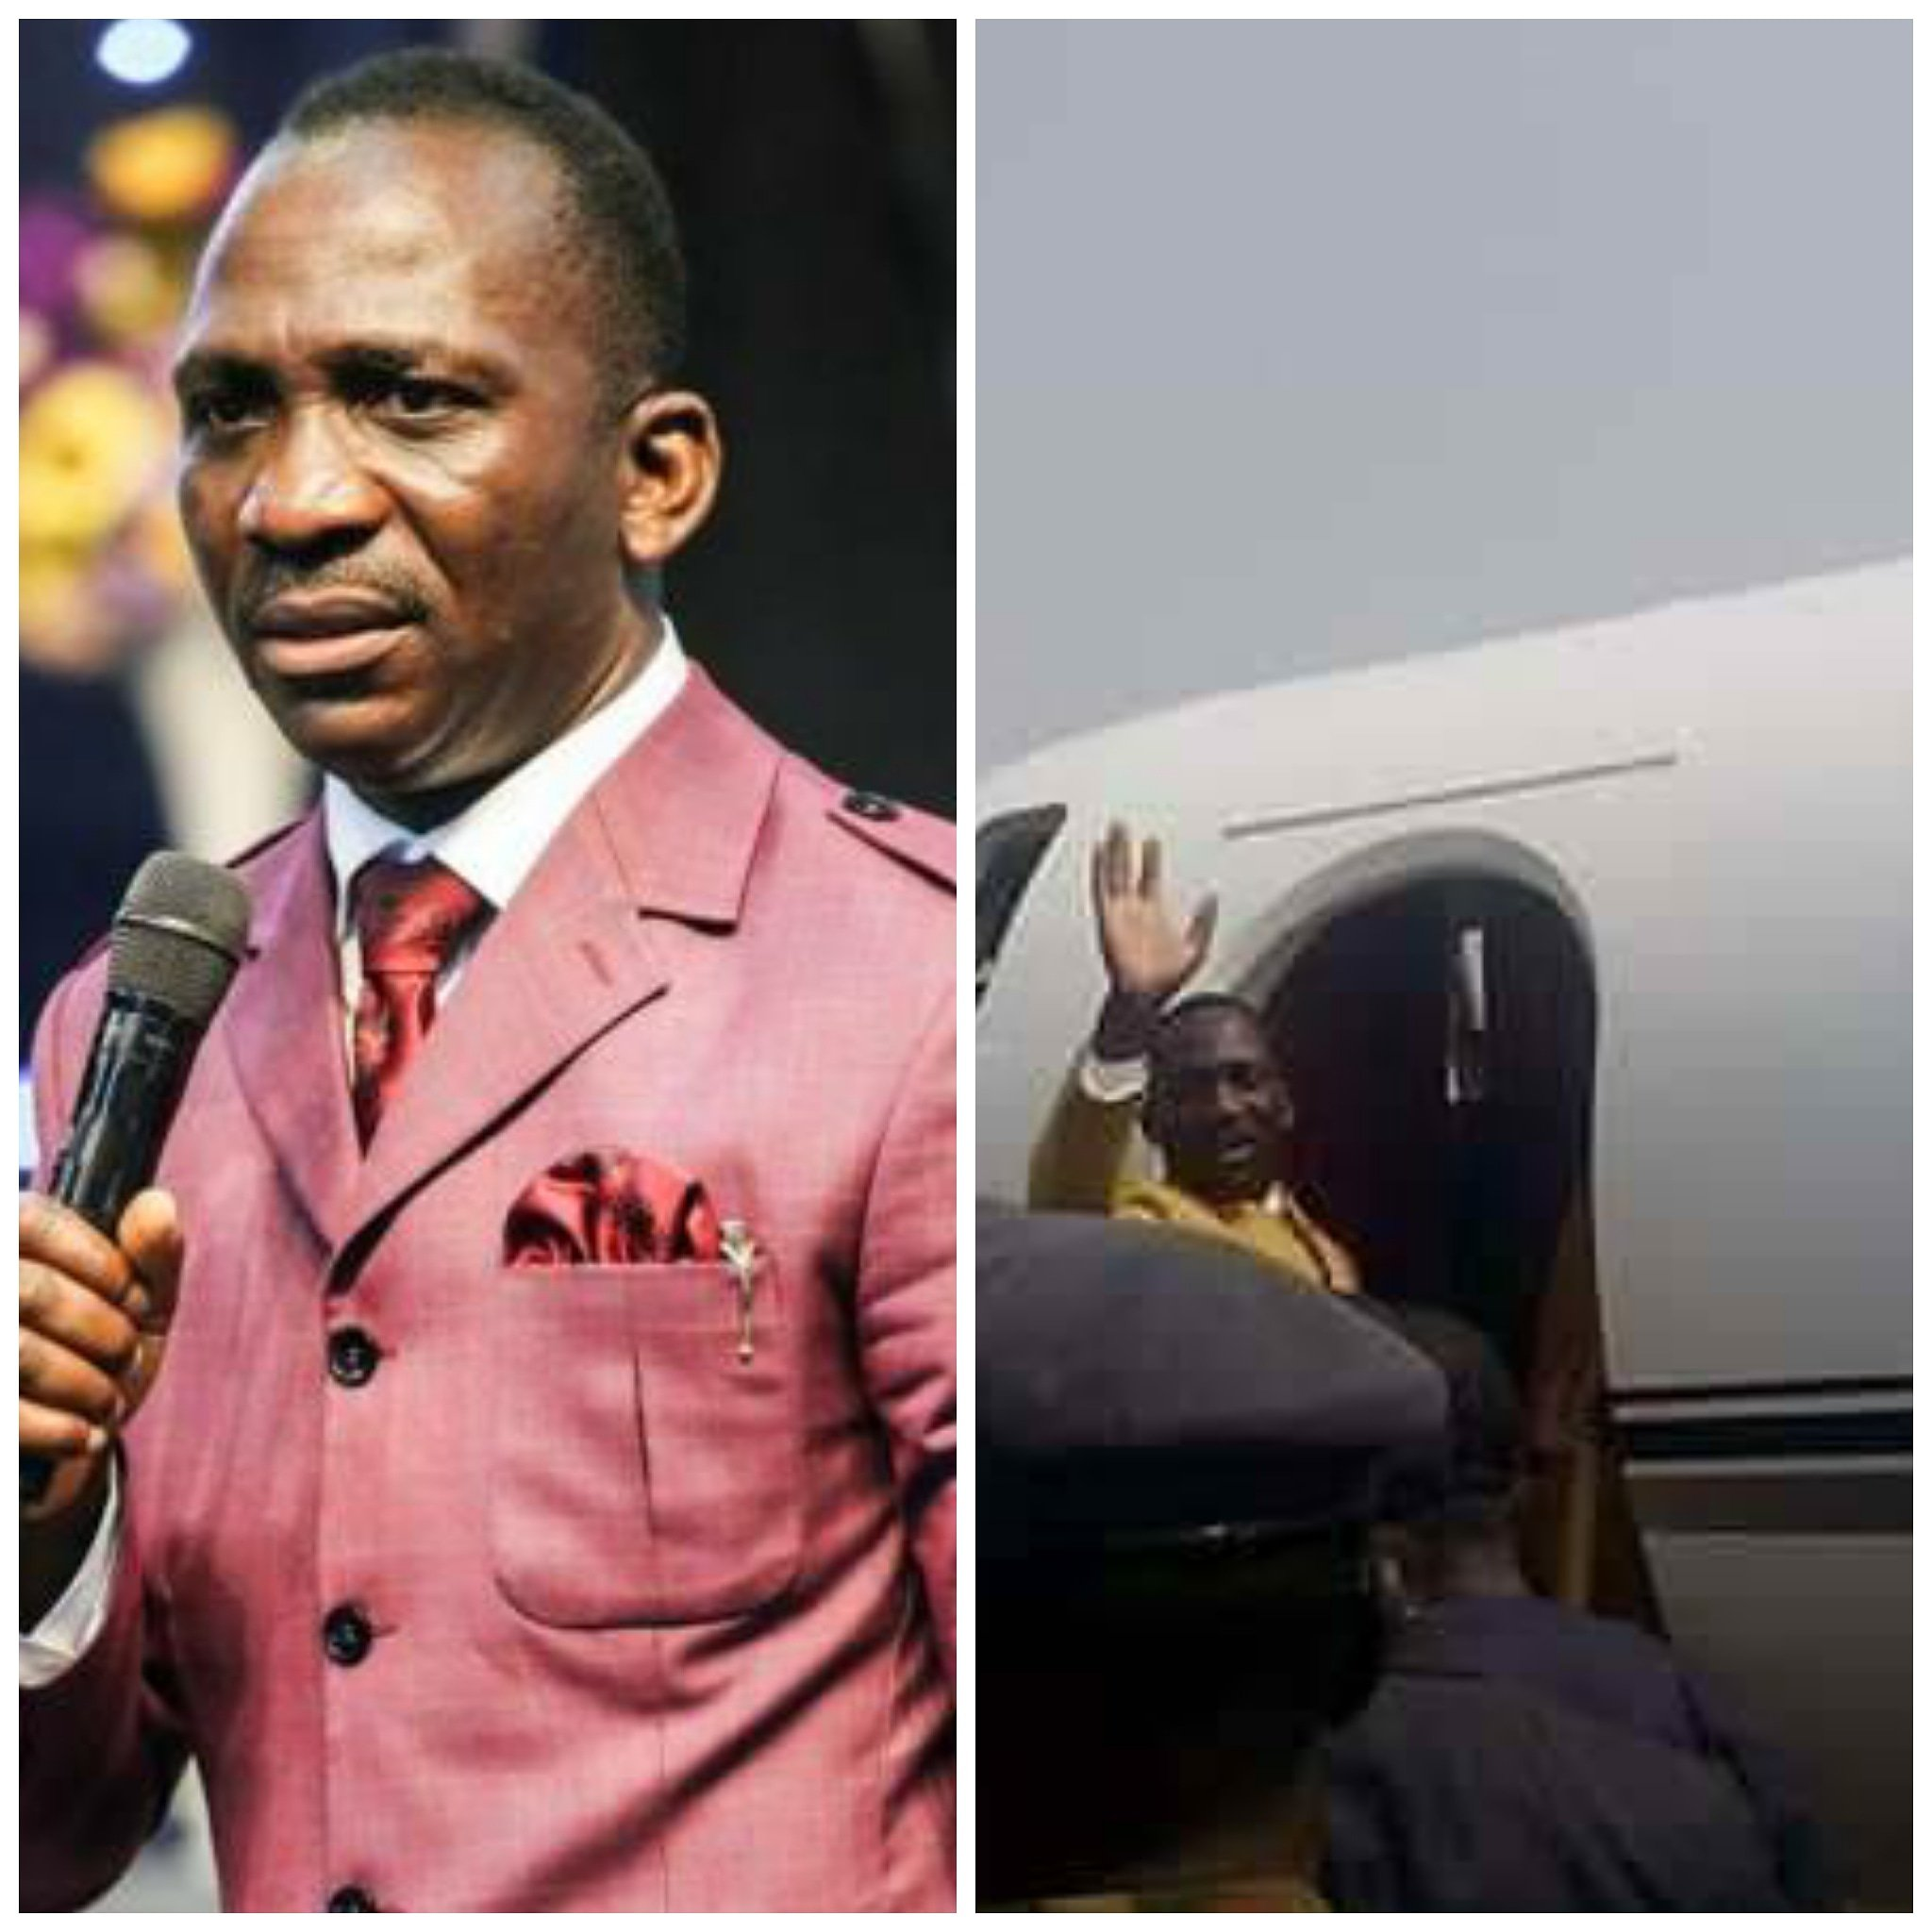 Dunamis International Church releases statement concerning News of Acquired Jet